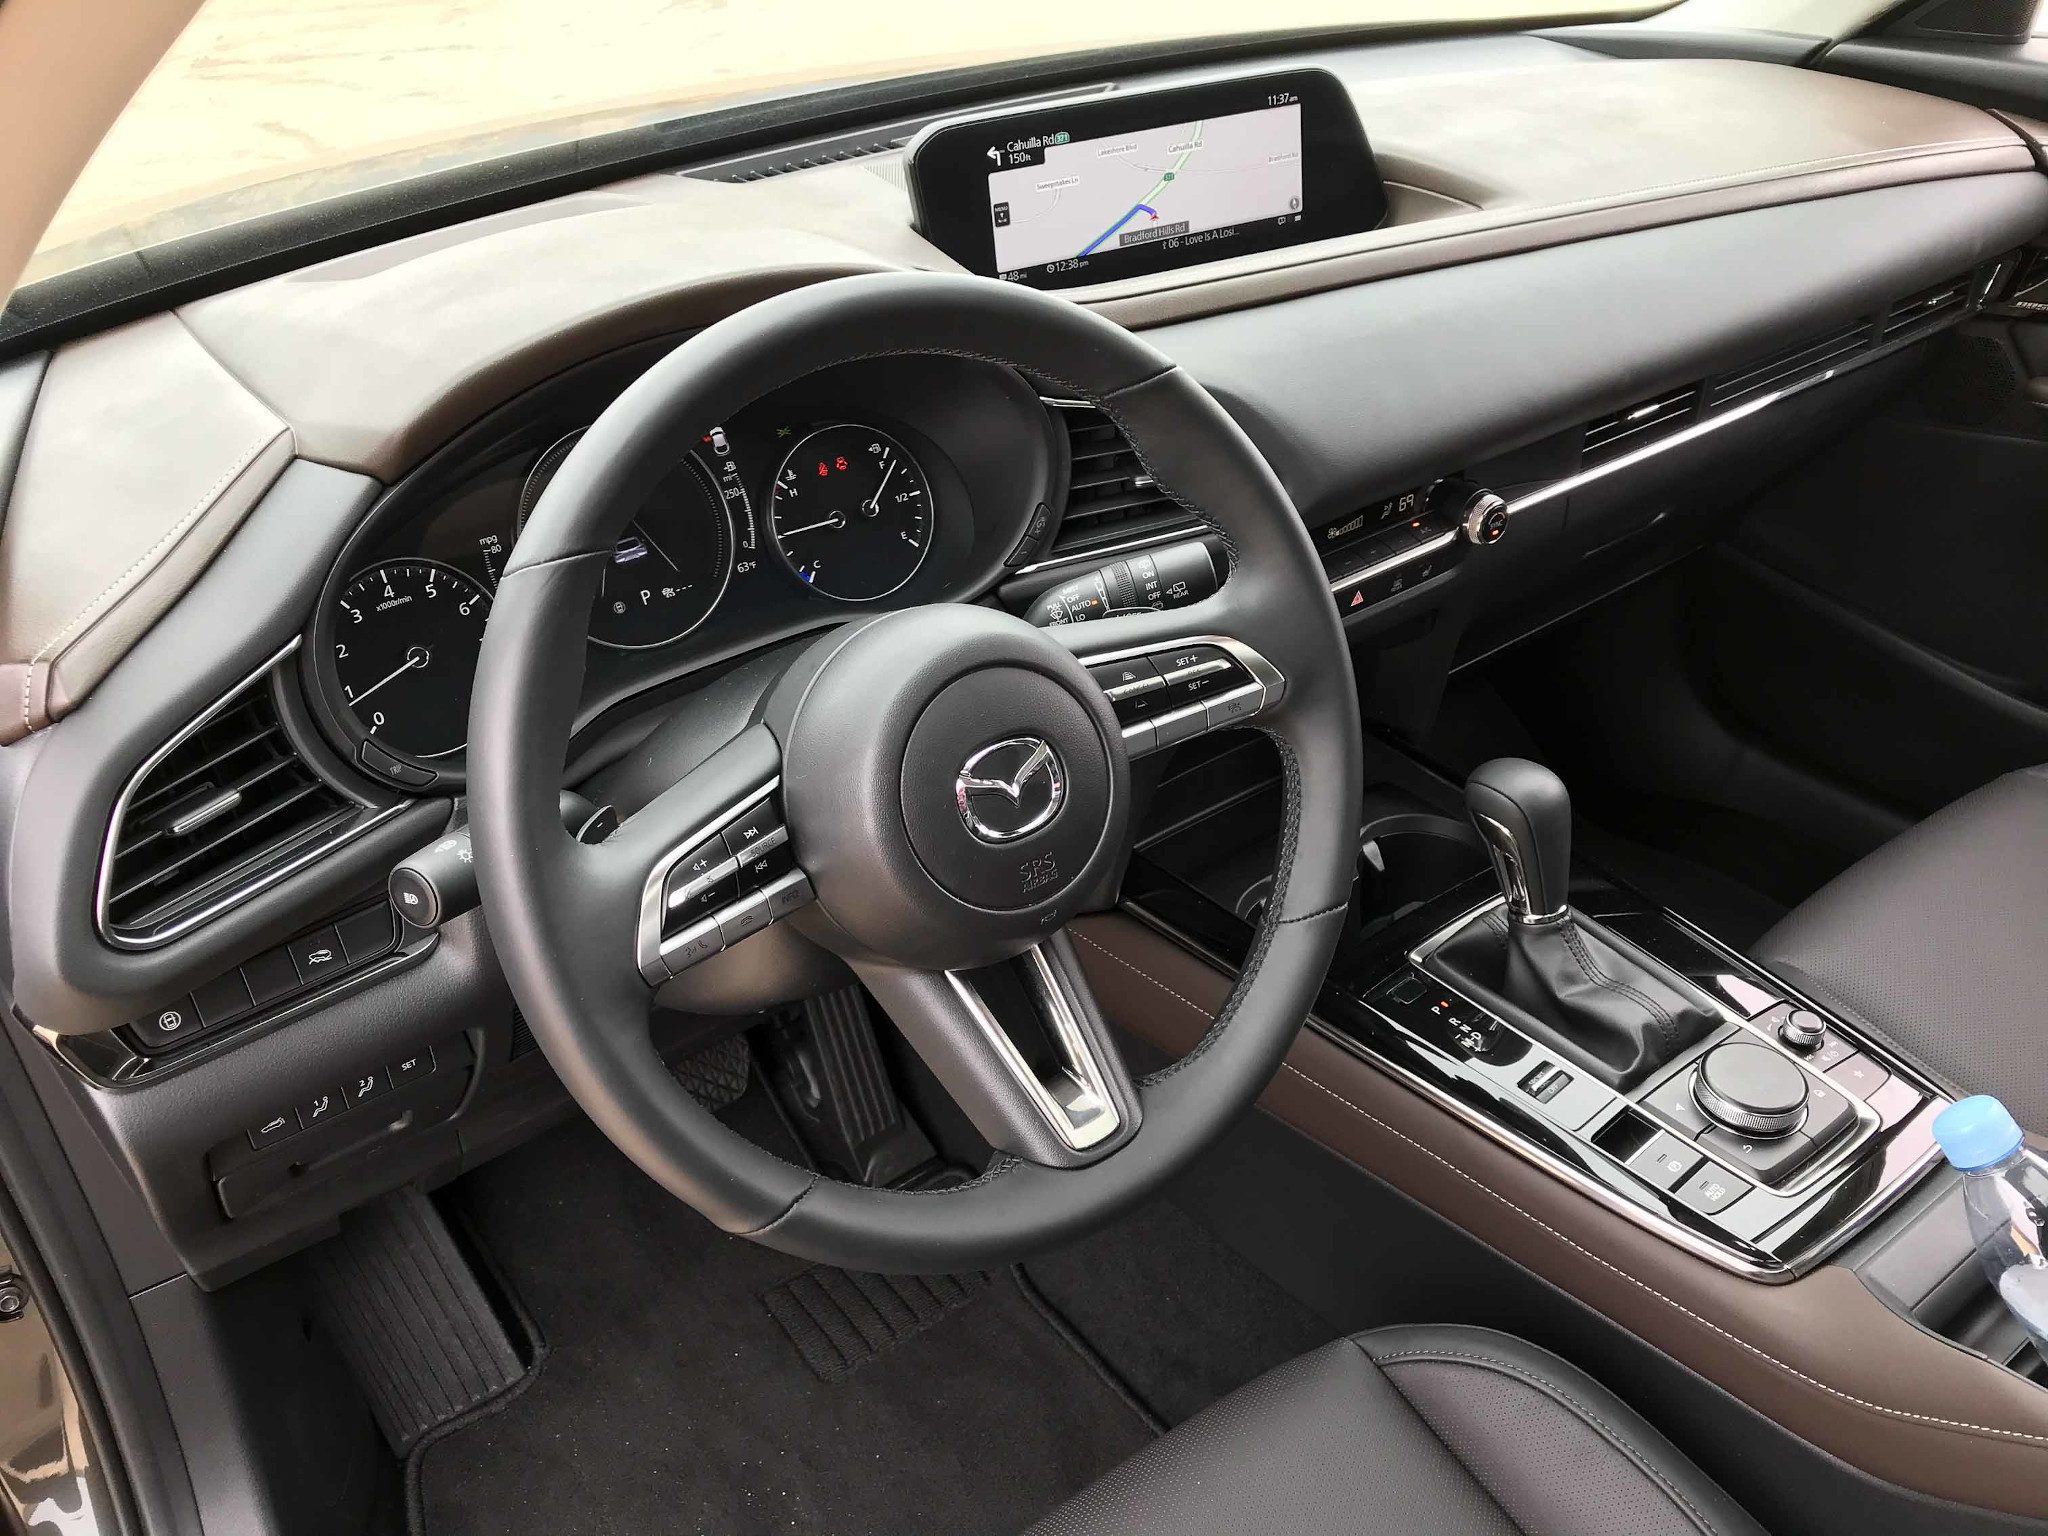 mazda-cx-30-2020-12-front-row--interior--steering-wheel.jpg